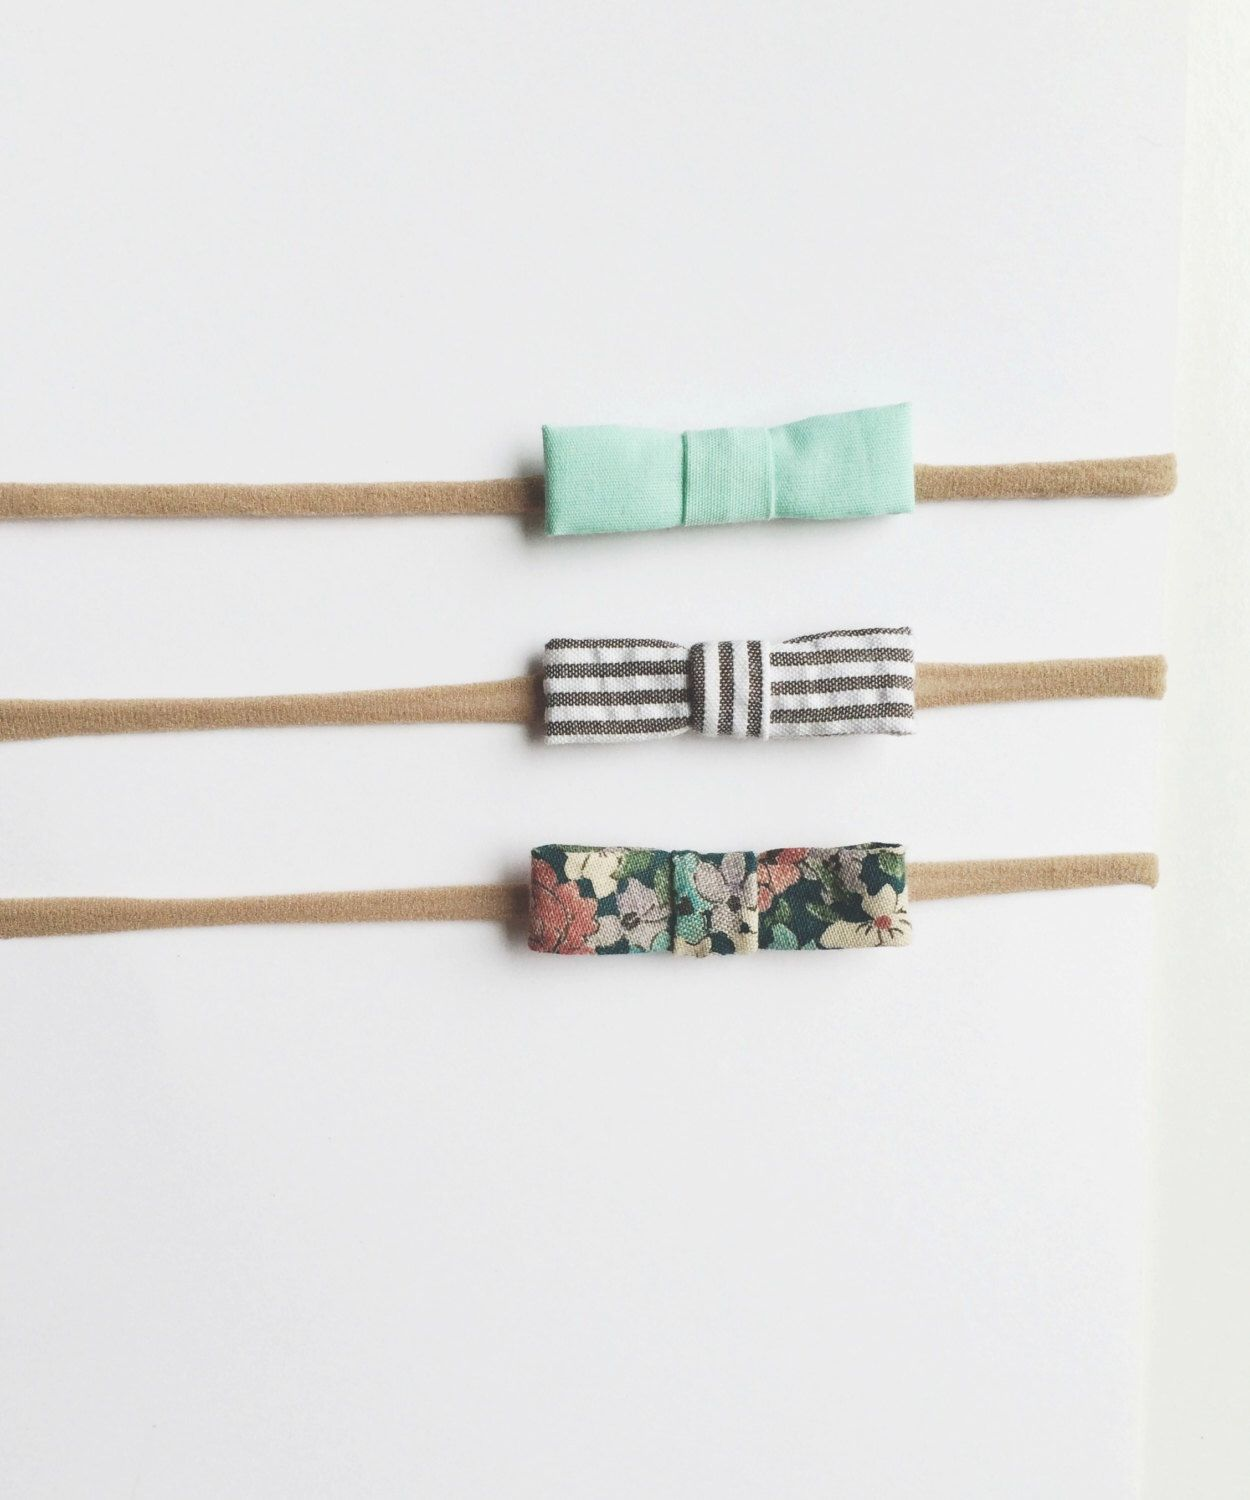 Headband Bow Set for Baby Mint Bow / Vintage Flower Bow / Striped Bow made with nylon elastic to grow with baby by SimpleJuneByKate on Etsy https://www.etsy.com/listing/188895324/headband-bow-set-for-baby-mint-bow